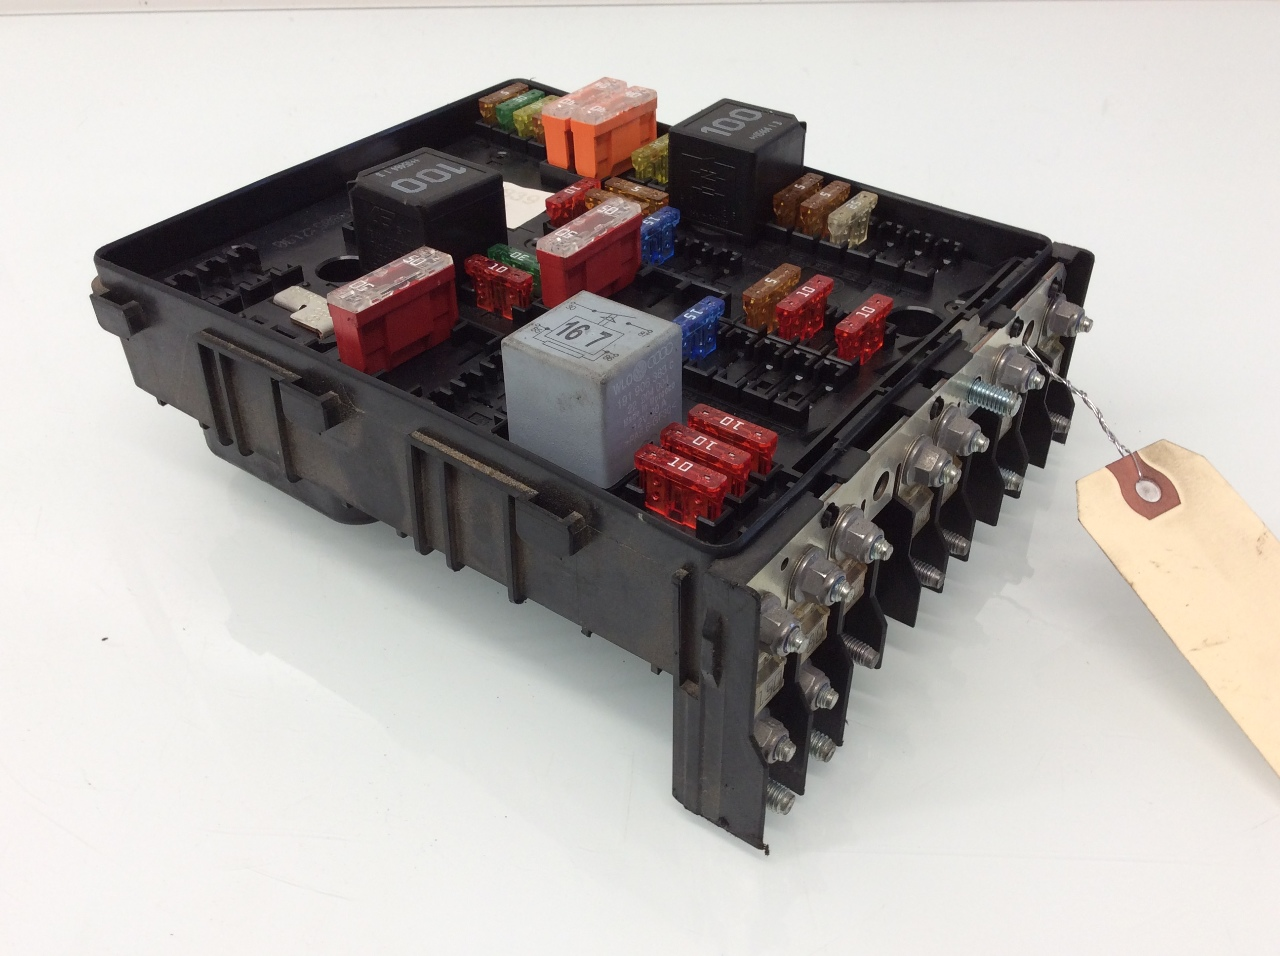 hight resolution of 2007 2008 volkswagen eos engine fuse box relay 1k0937124k vw eos fuse box vw eos fuse